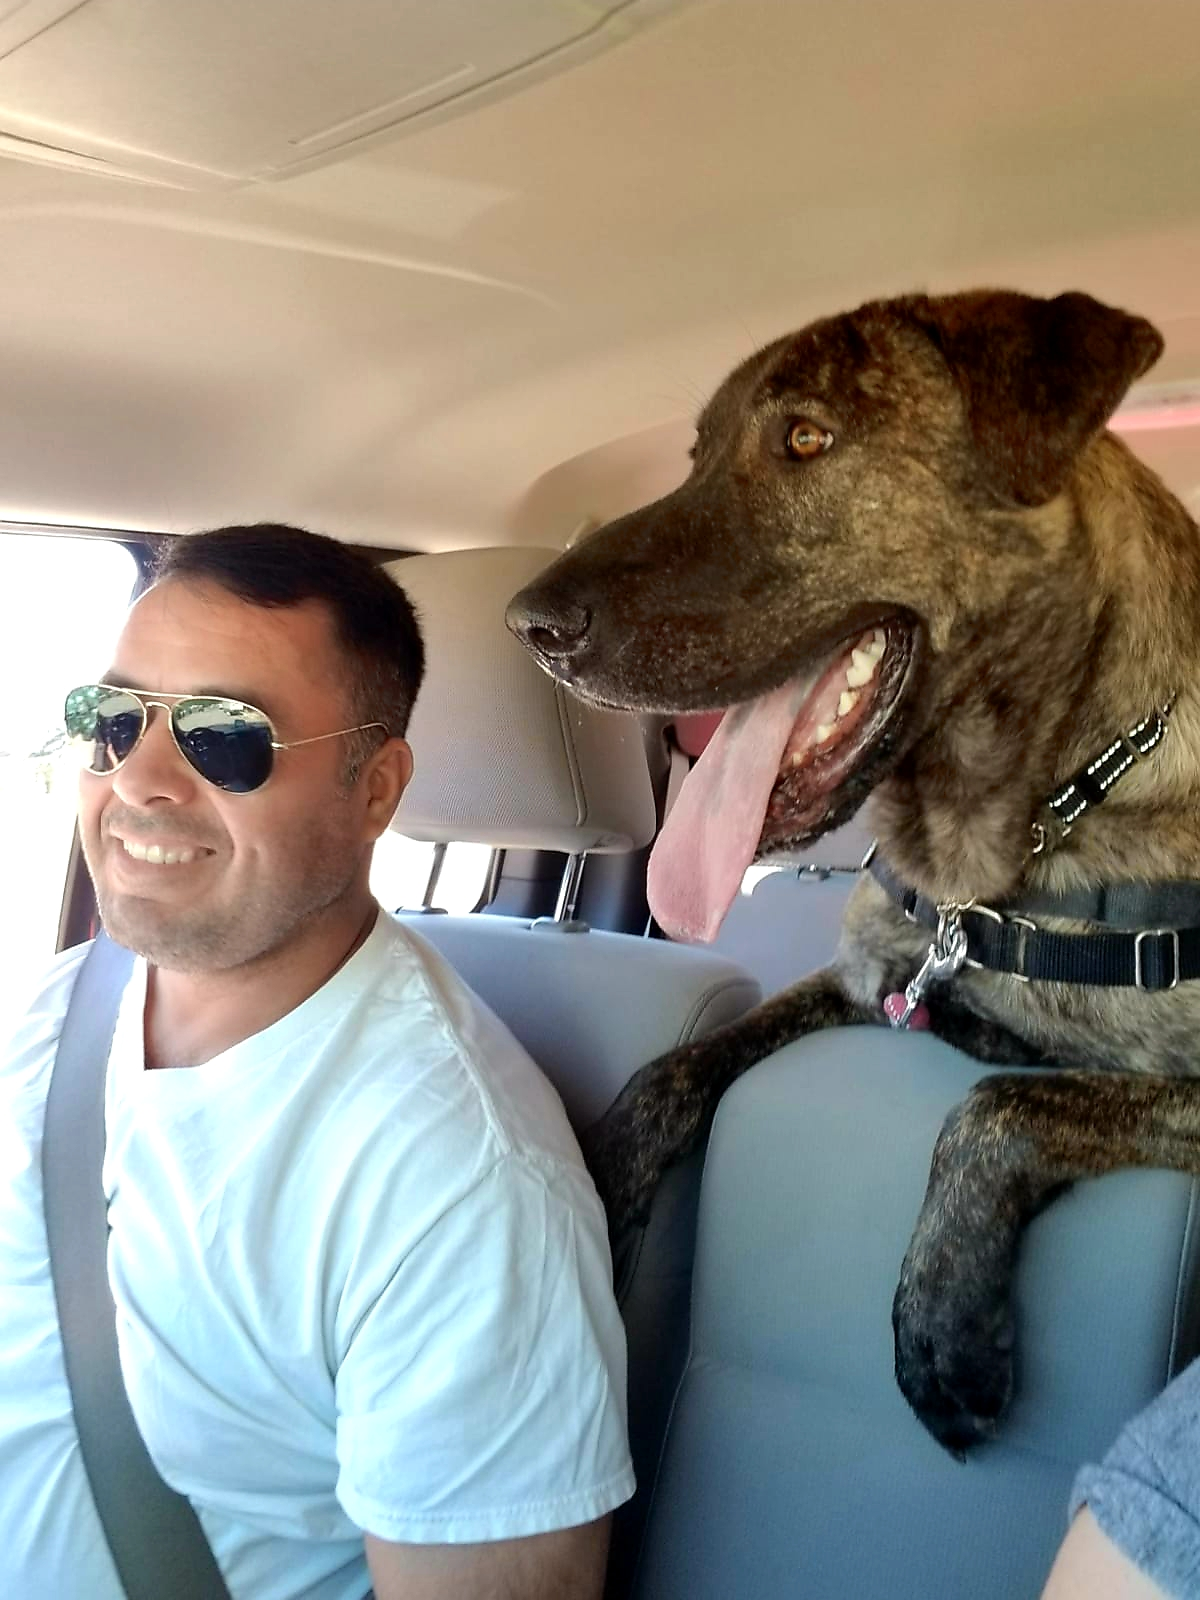 Juice starts his day adventure on a Fido Field Trip. Who looks happier Juice or his human companion?